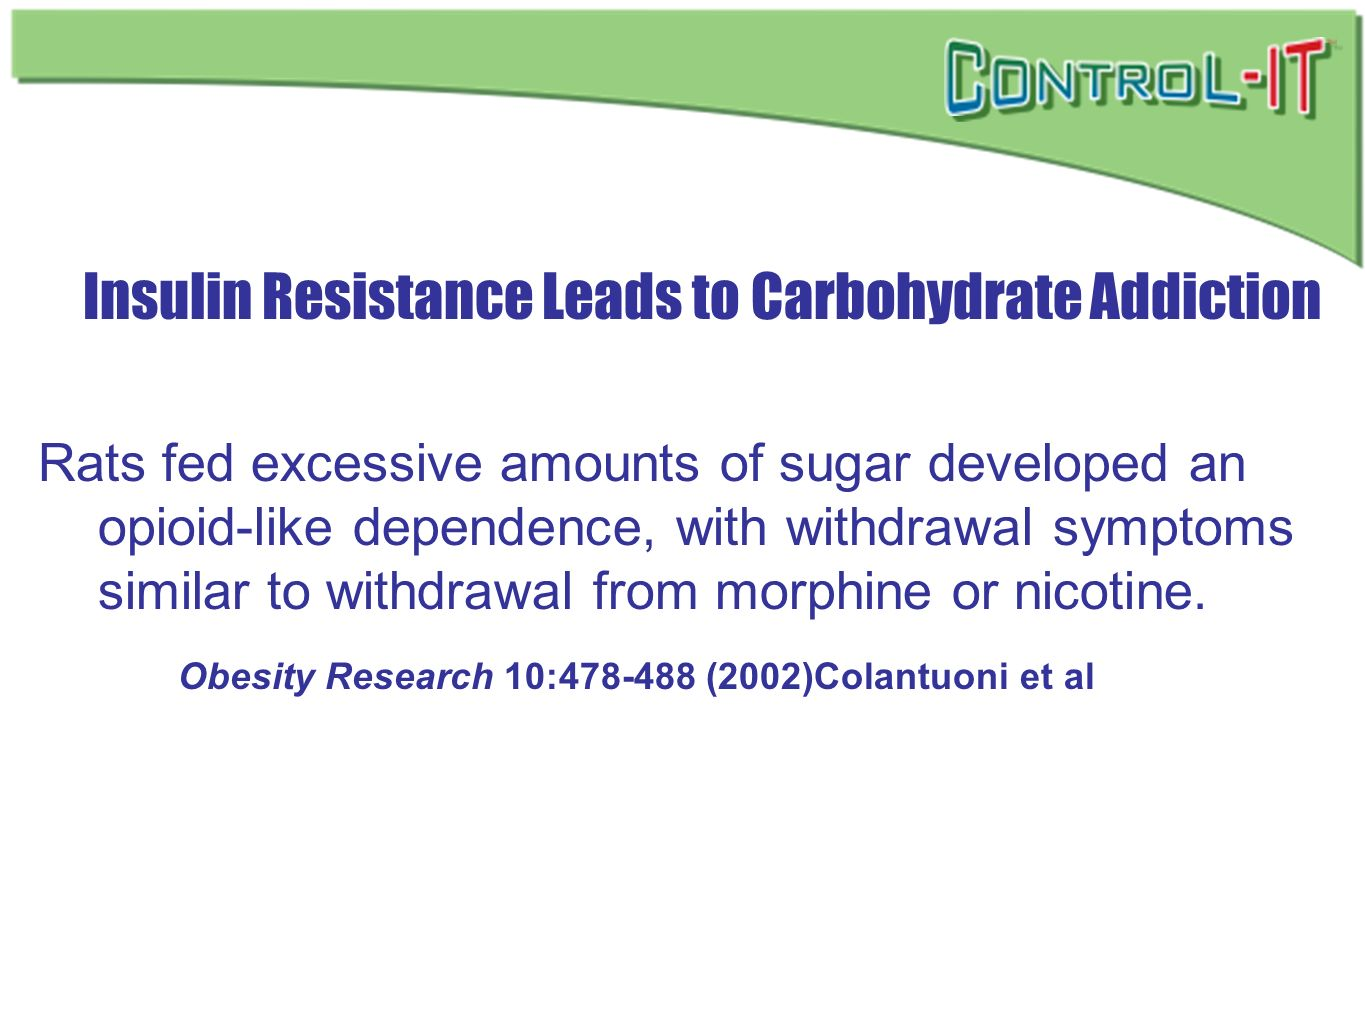 Insulin Resistance Leads to Carbohydrate Addiction